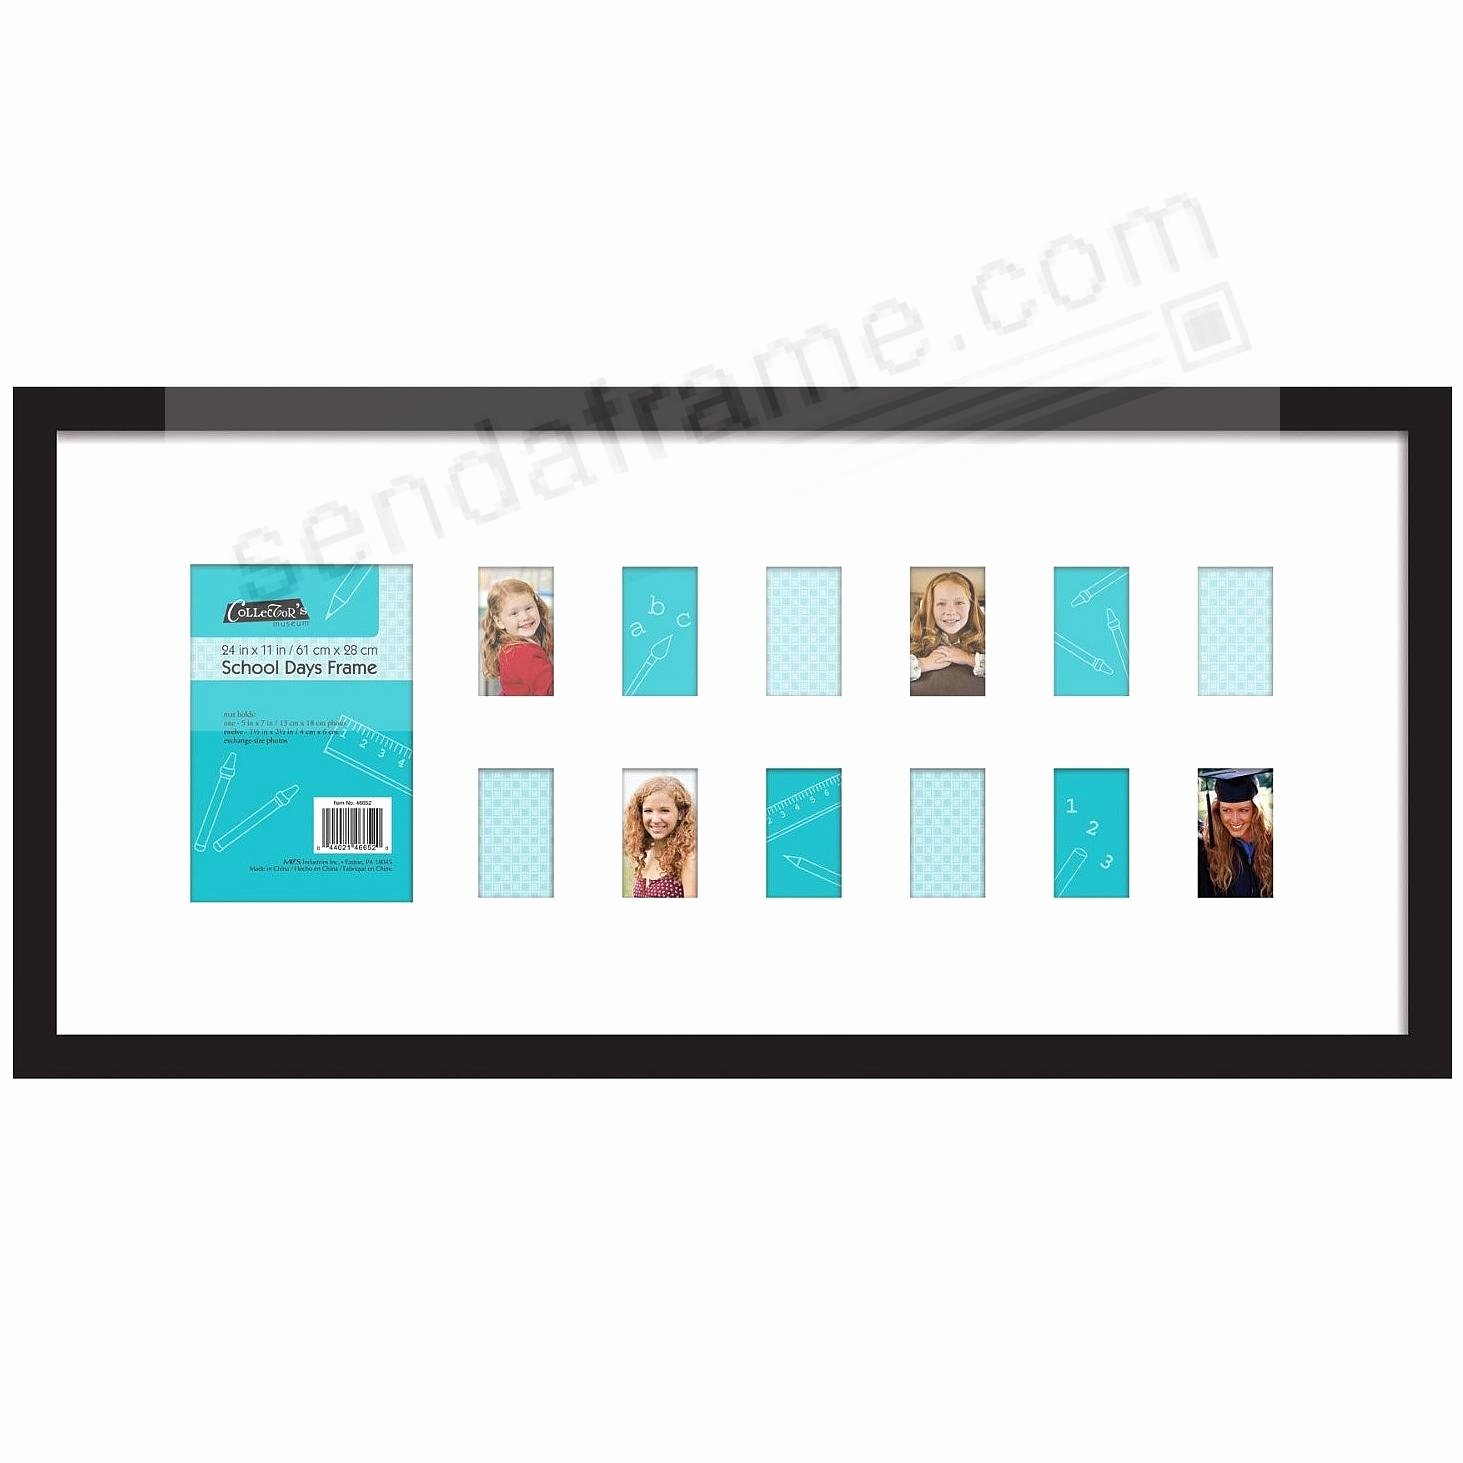 Employee Of the Month Picture Frame Elegant Growing Child K to 12 Frame or Employees Of the Month